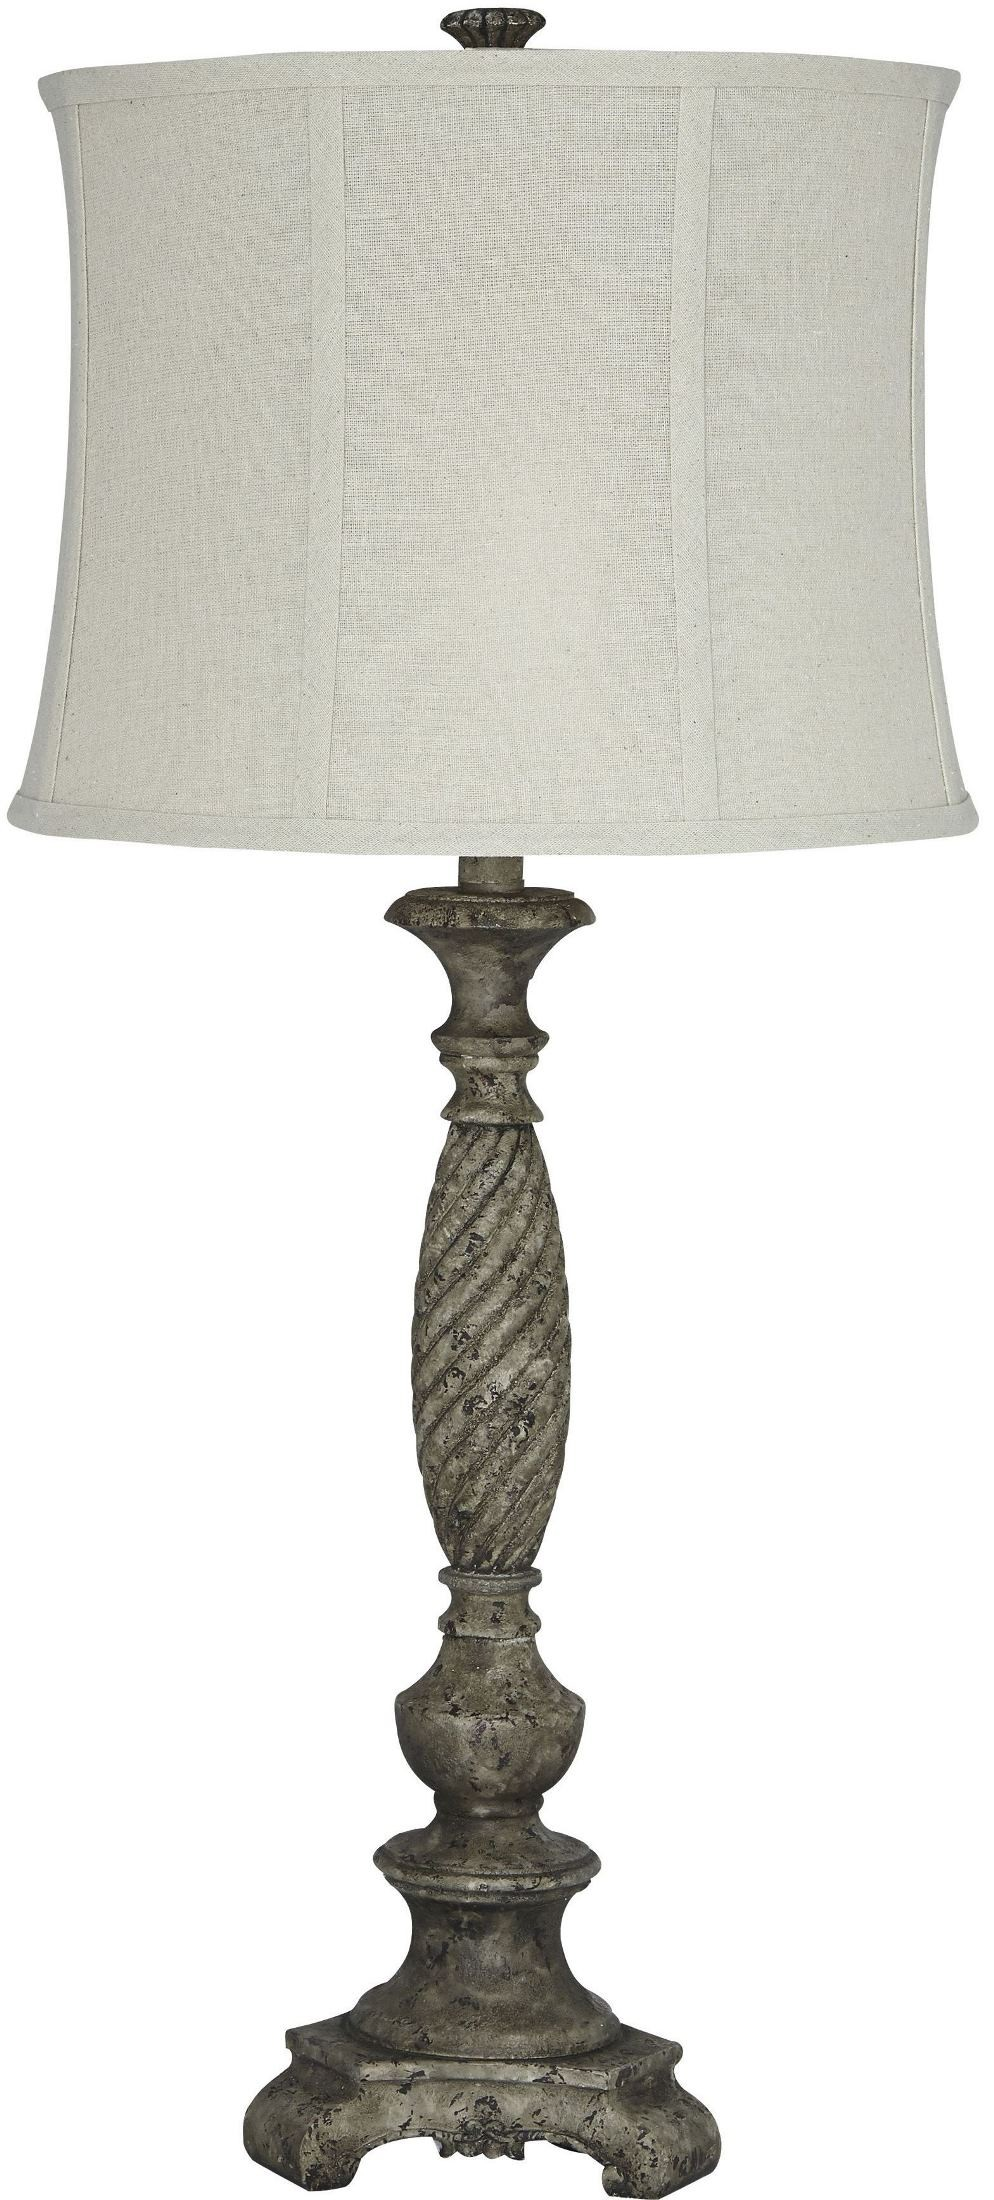 Antique Table Lamps Catalogs : Alinae antique gray poly table lamp from ashley coleman